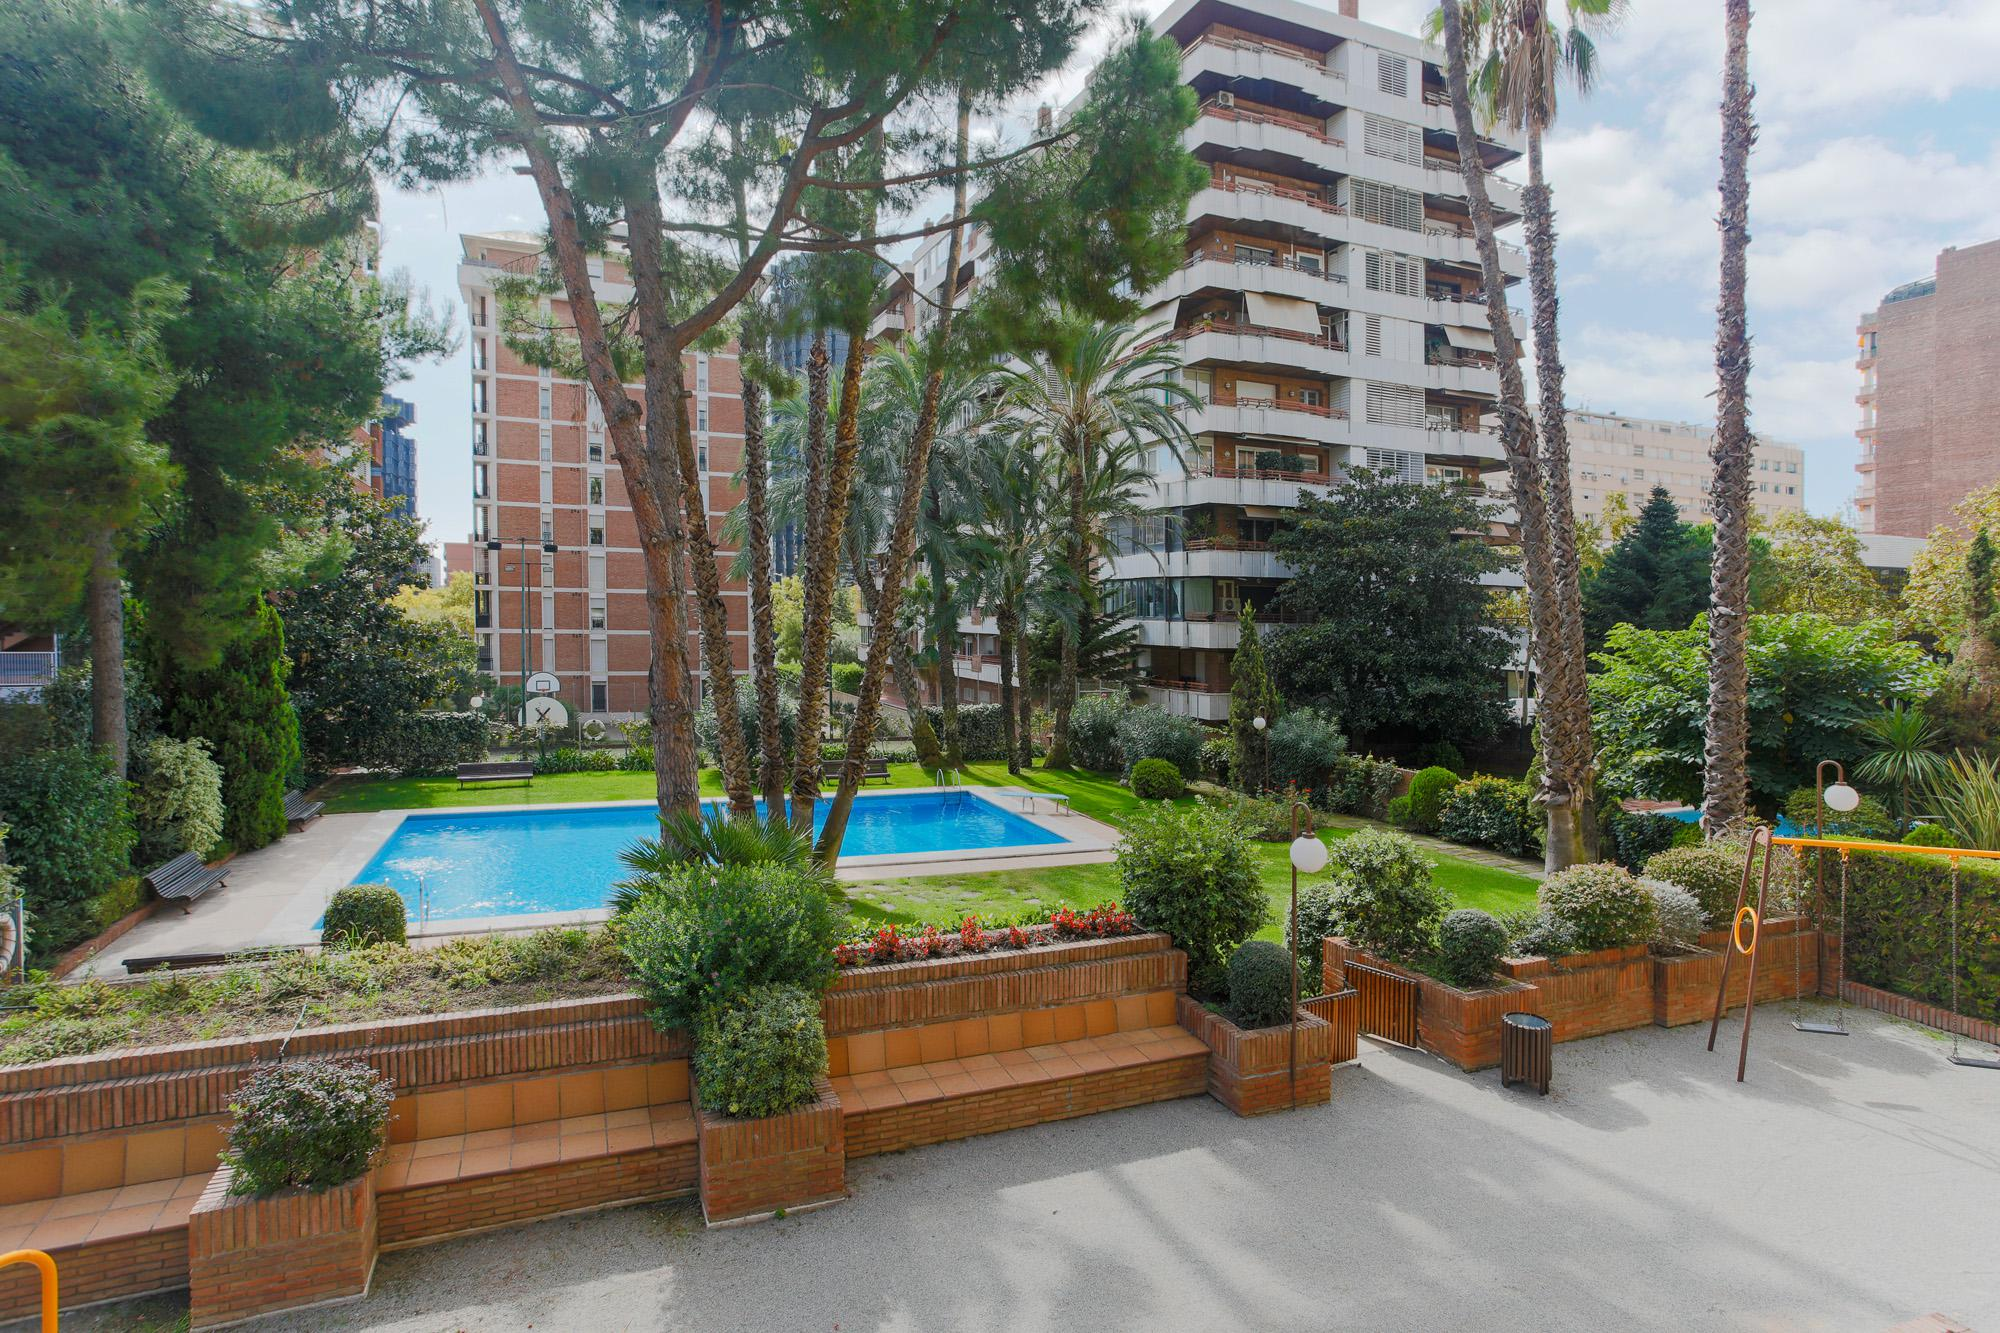 232863 Apartment for sale in Les Corts, Pedralbes 33